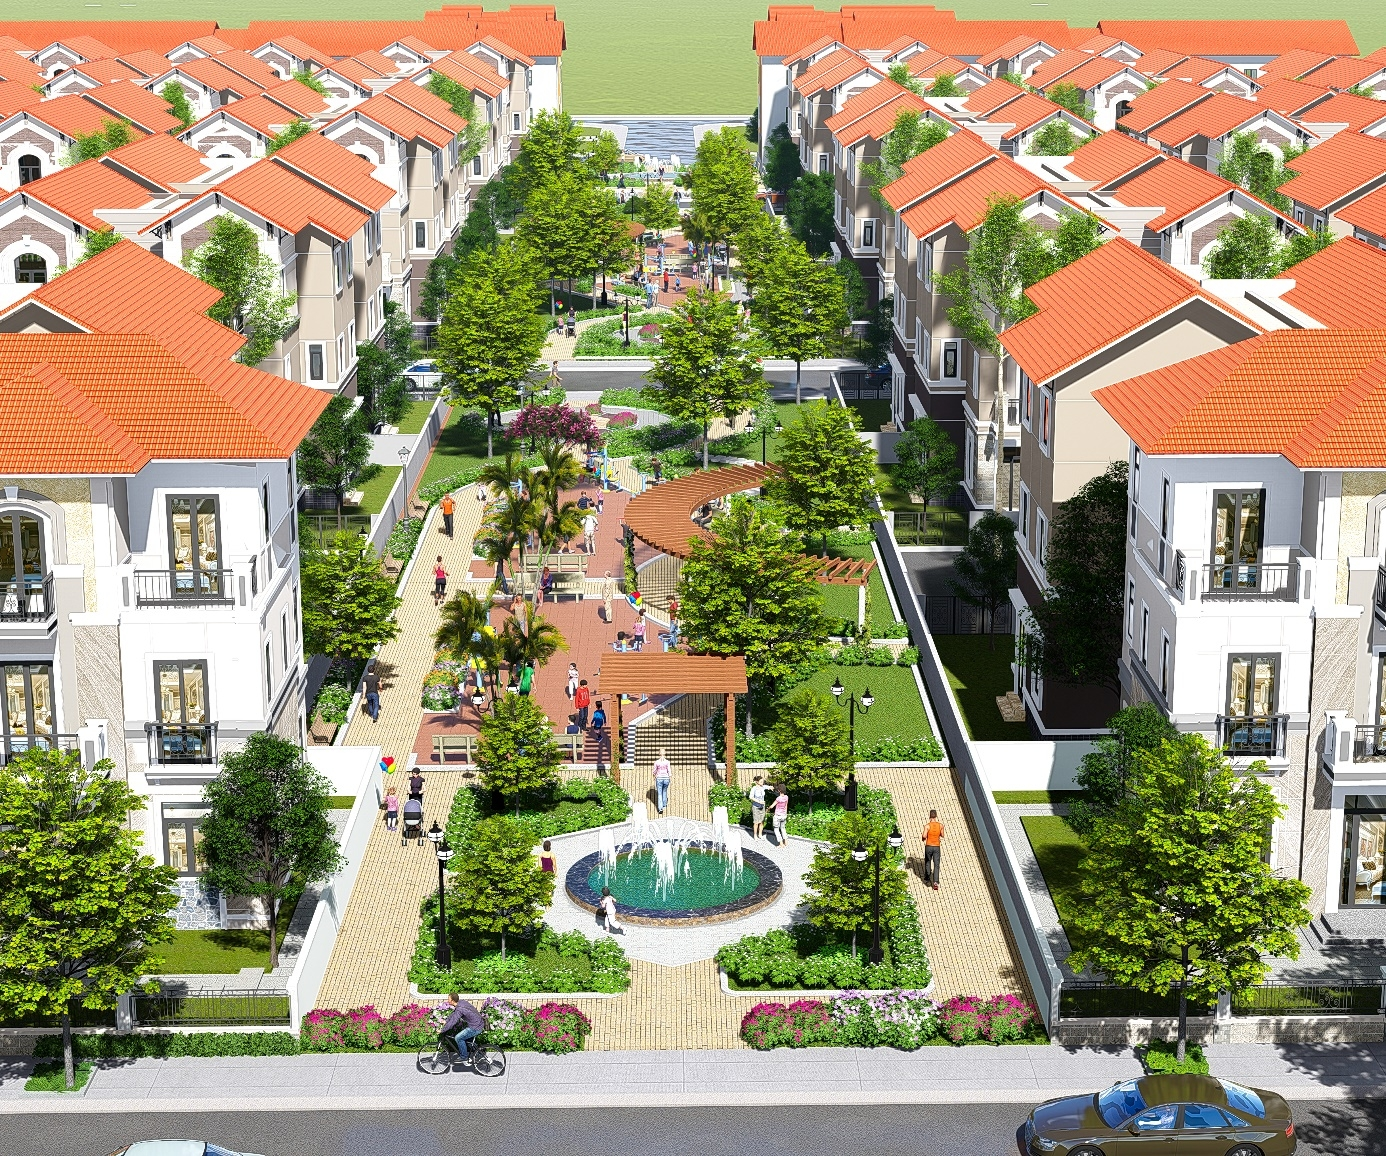 vsip bac ninh a green mega urban area in the heart of the city